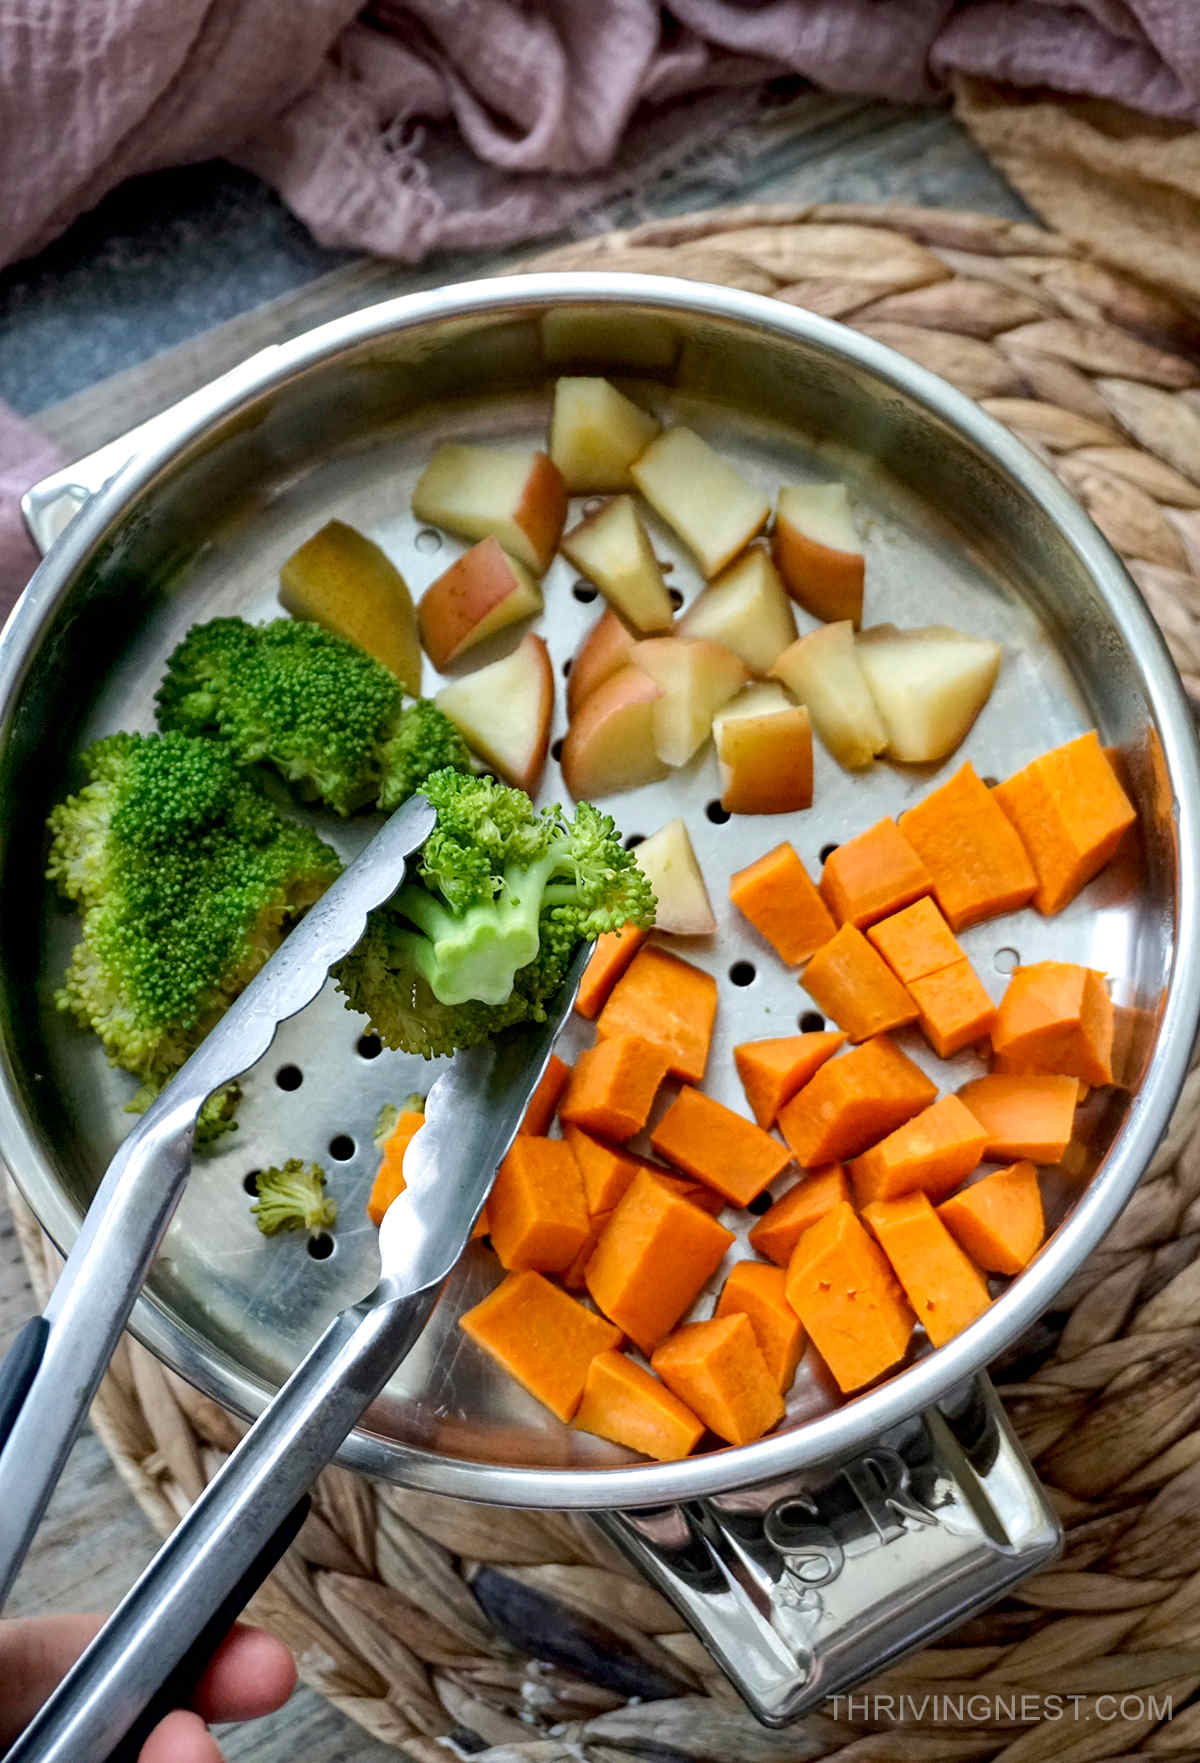 Steamed sweet potato broccoli apple for baby.